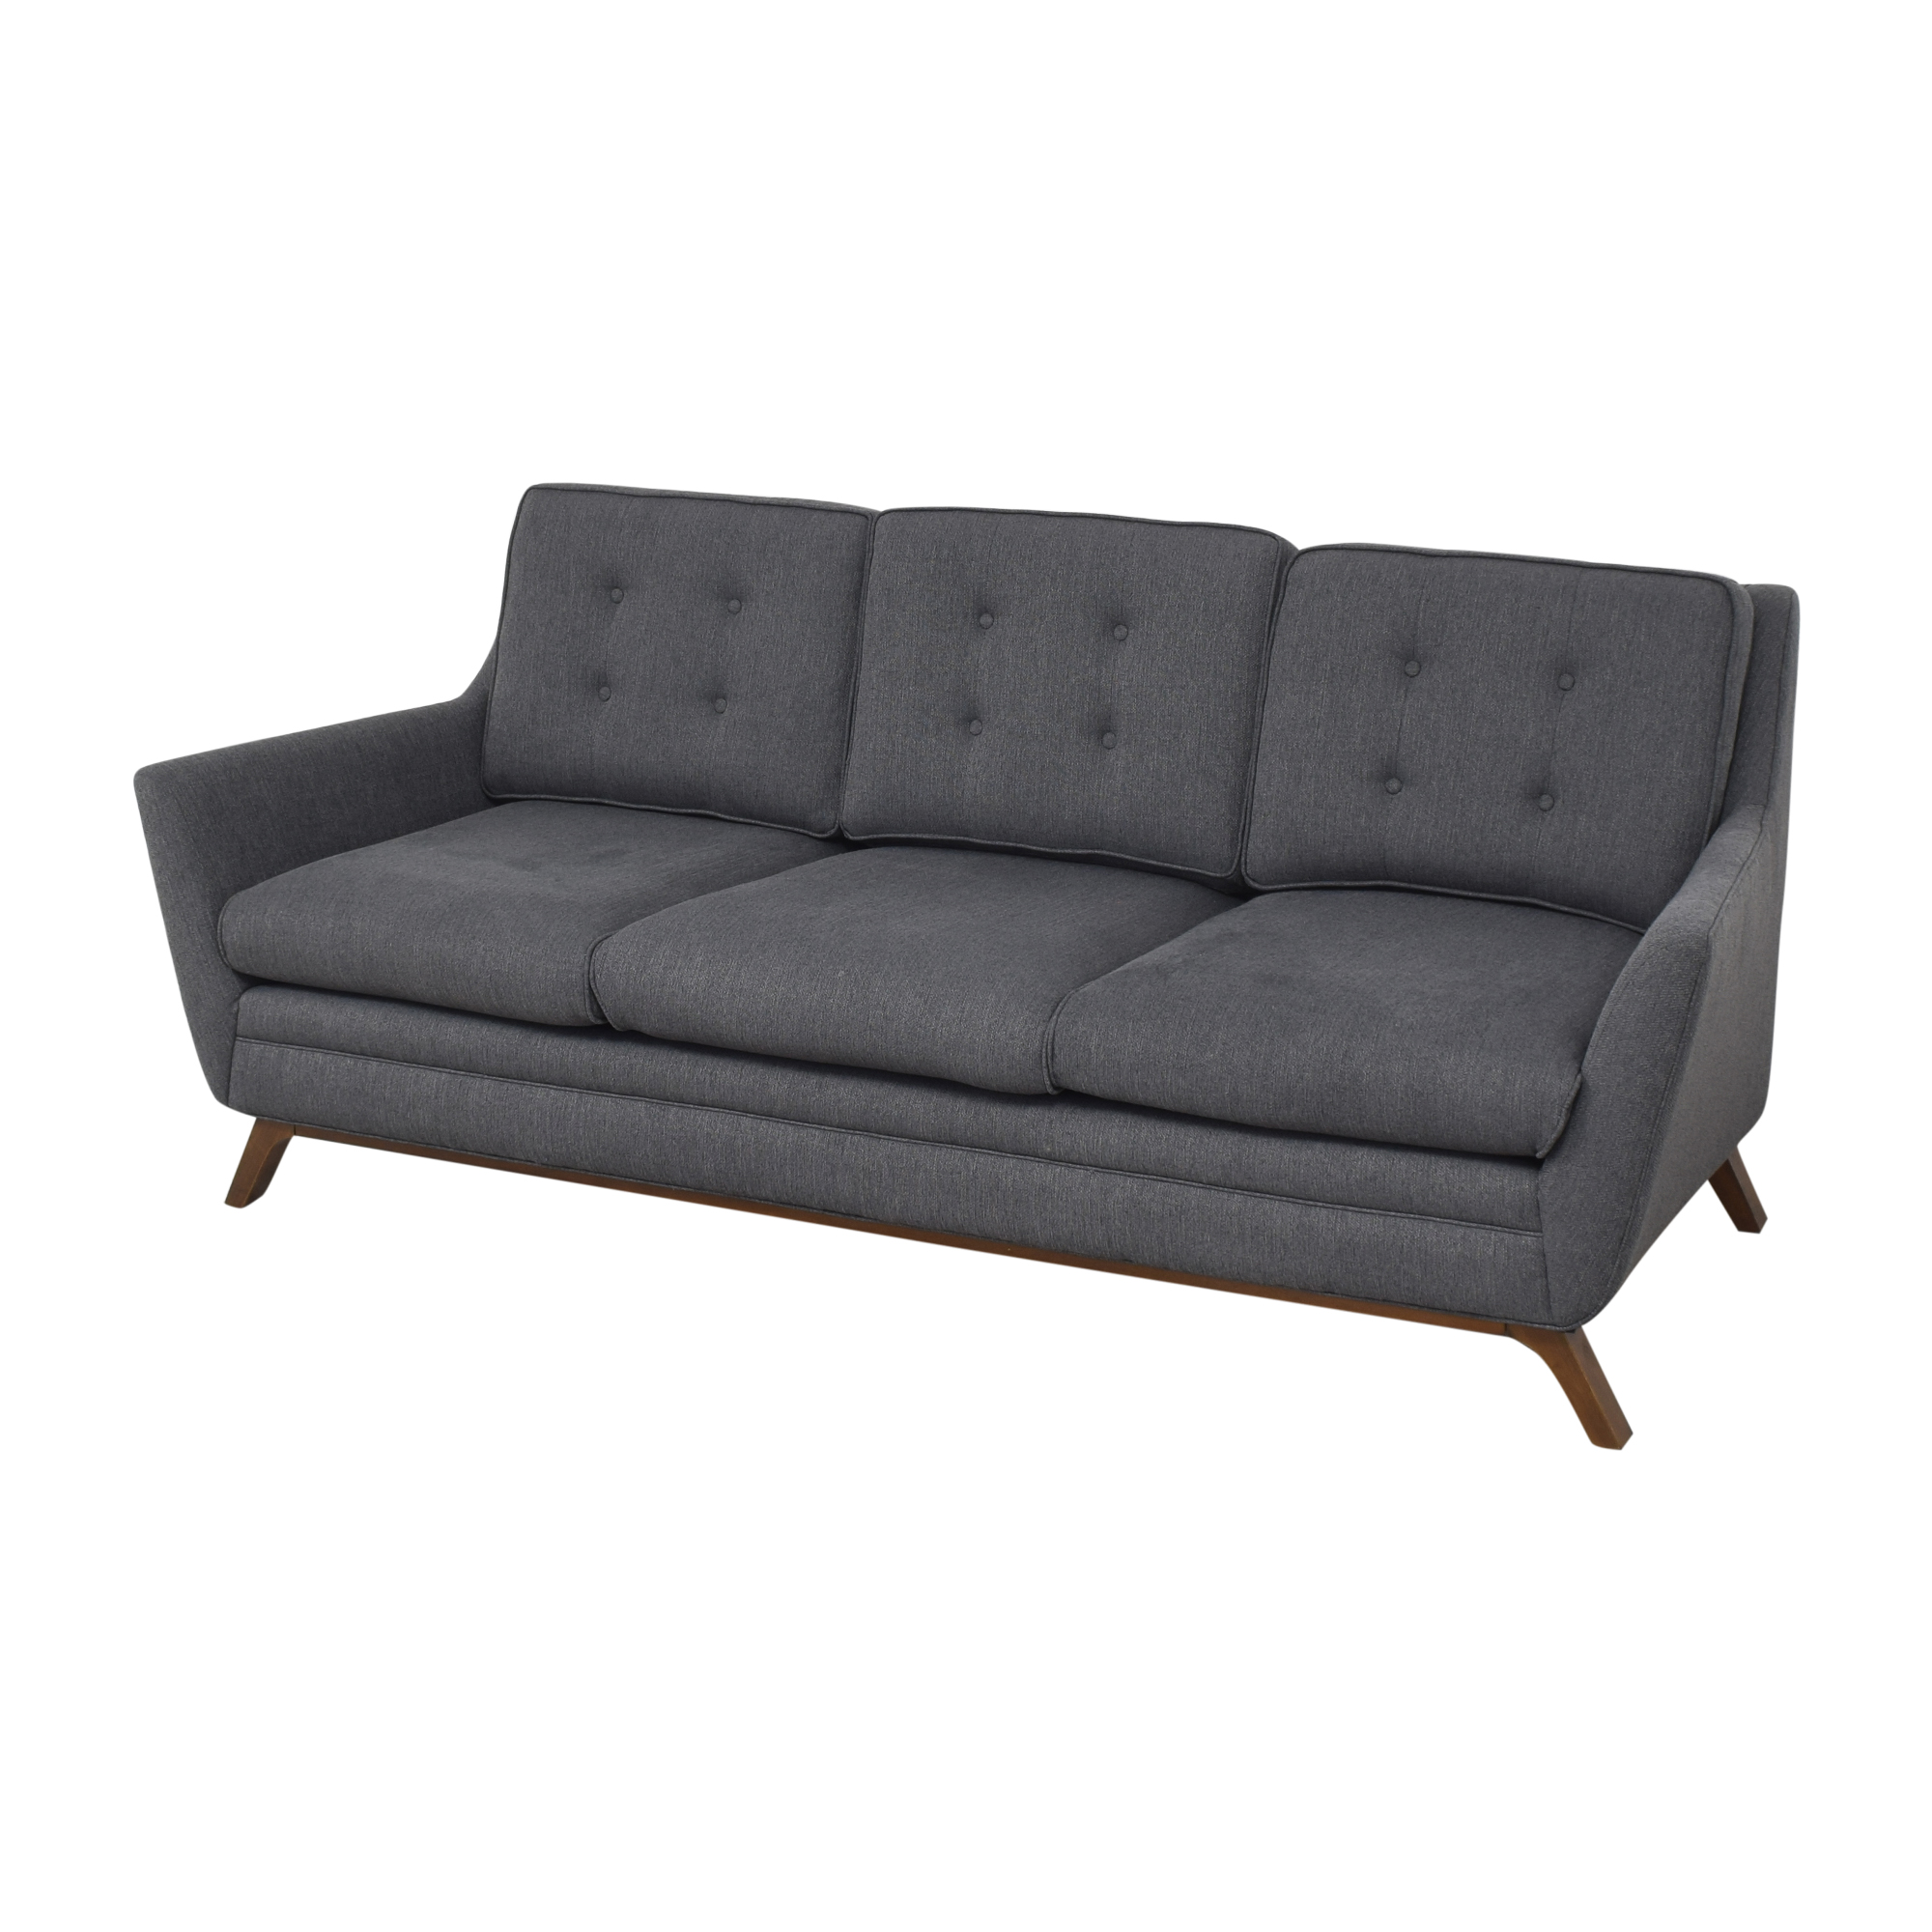 Modway Modway Beguile Tufted Sofa gray